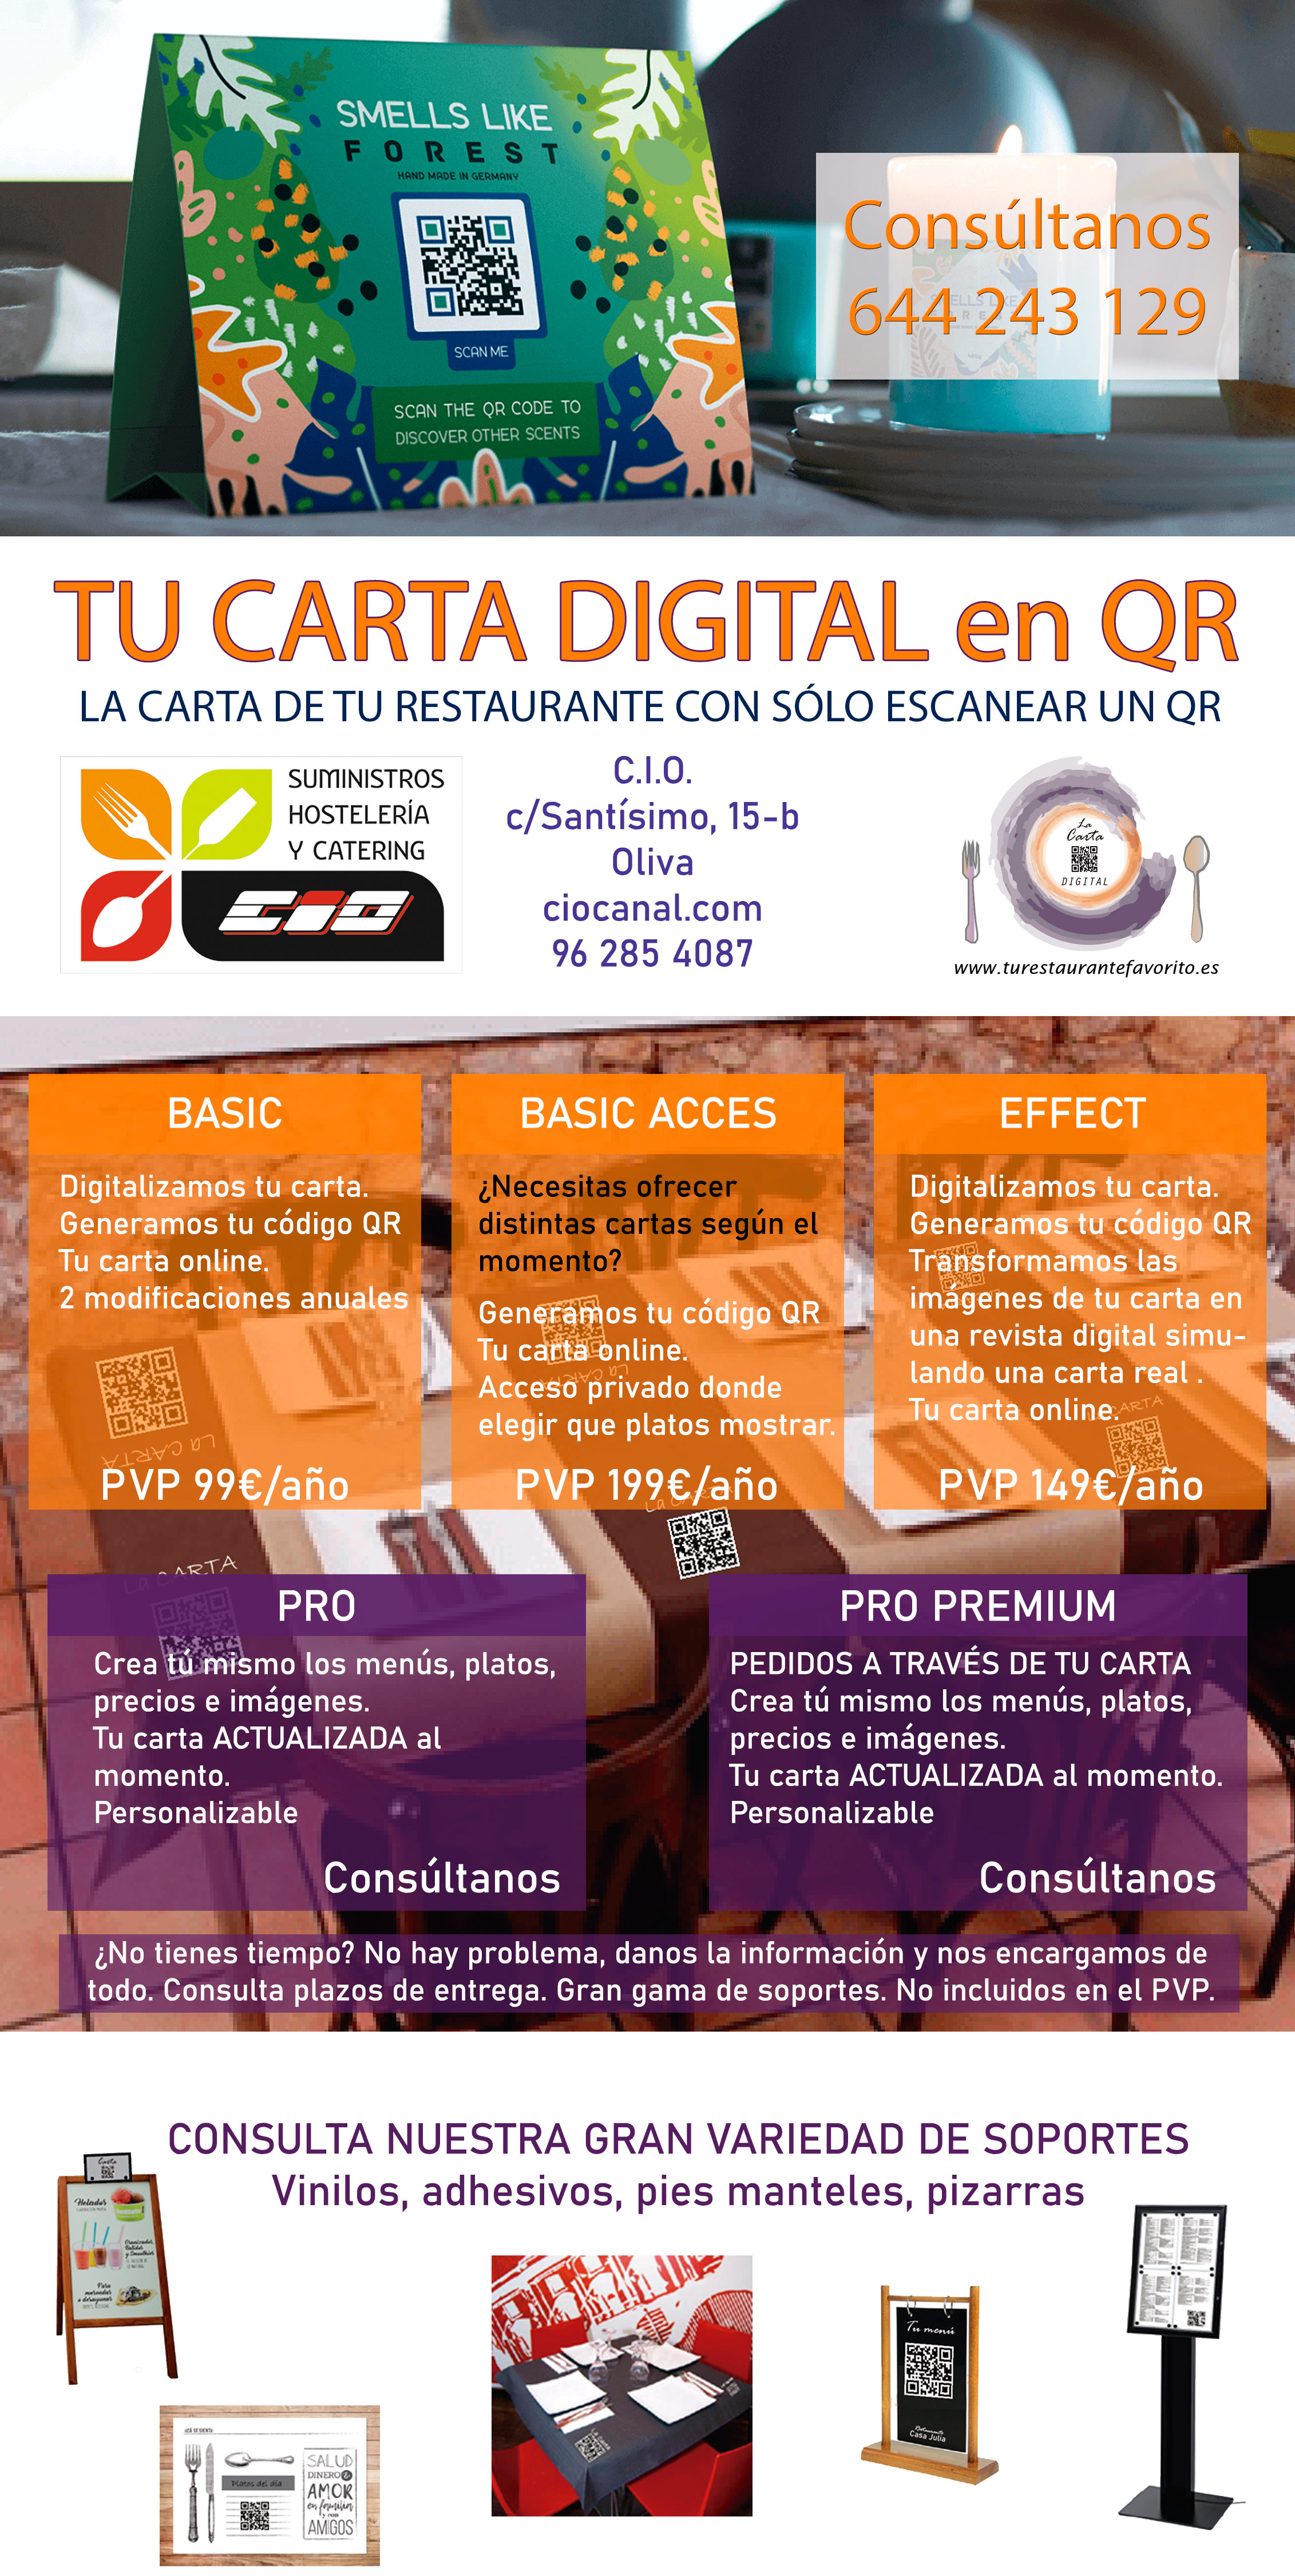 Carta digital para tu restaurante